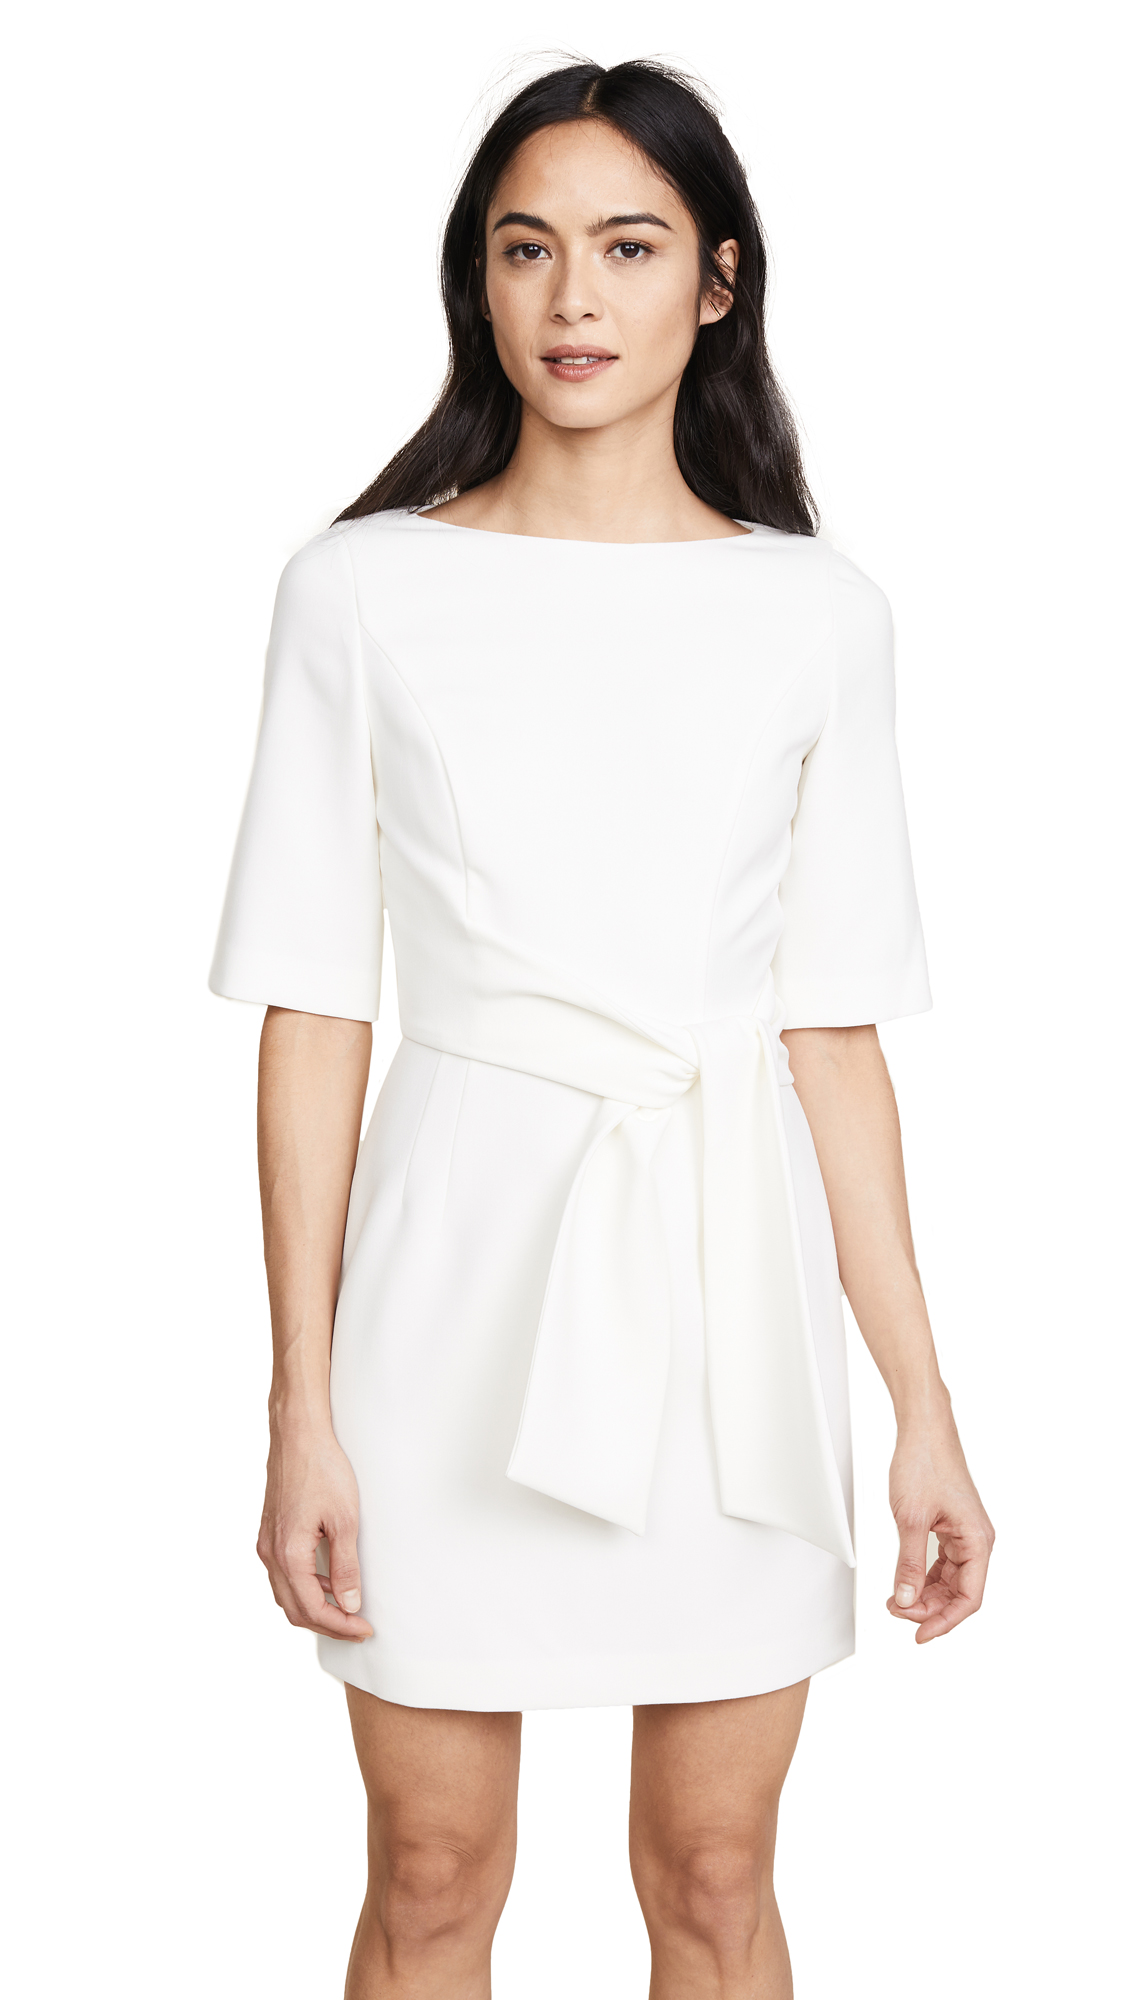 alice + olivia Virgil Boat Neck Wrap Dress - Off White